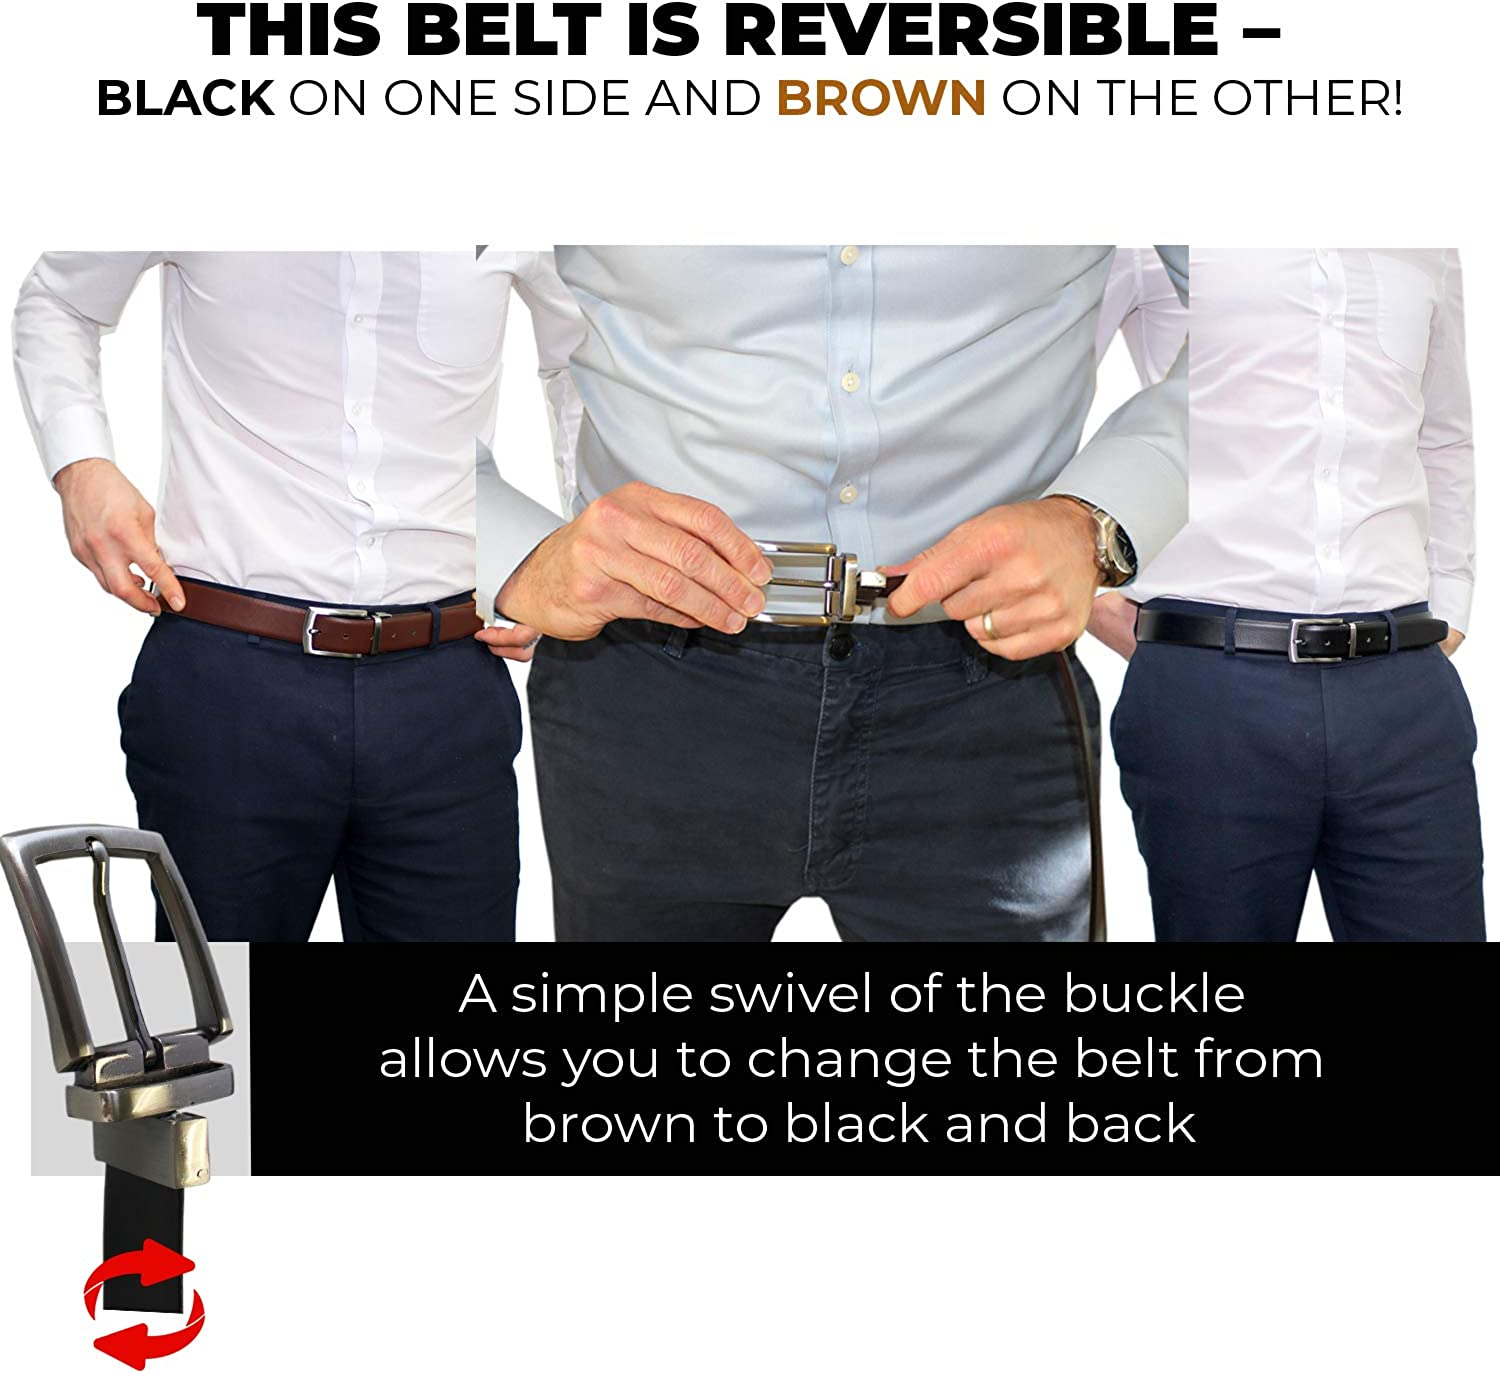 Reversible Leather Belt for Men Genuine Leather Adjustable Size with Reversible Buckles 2 in 1 Mens Dress Belt with Single Prong Aluminium Buckle Brown And Black Dress and Casual by Rallegra